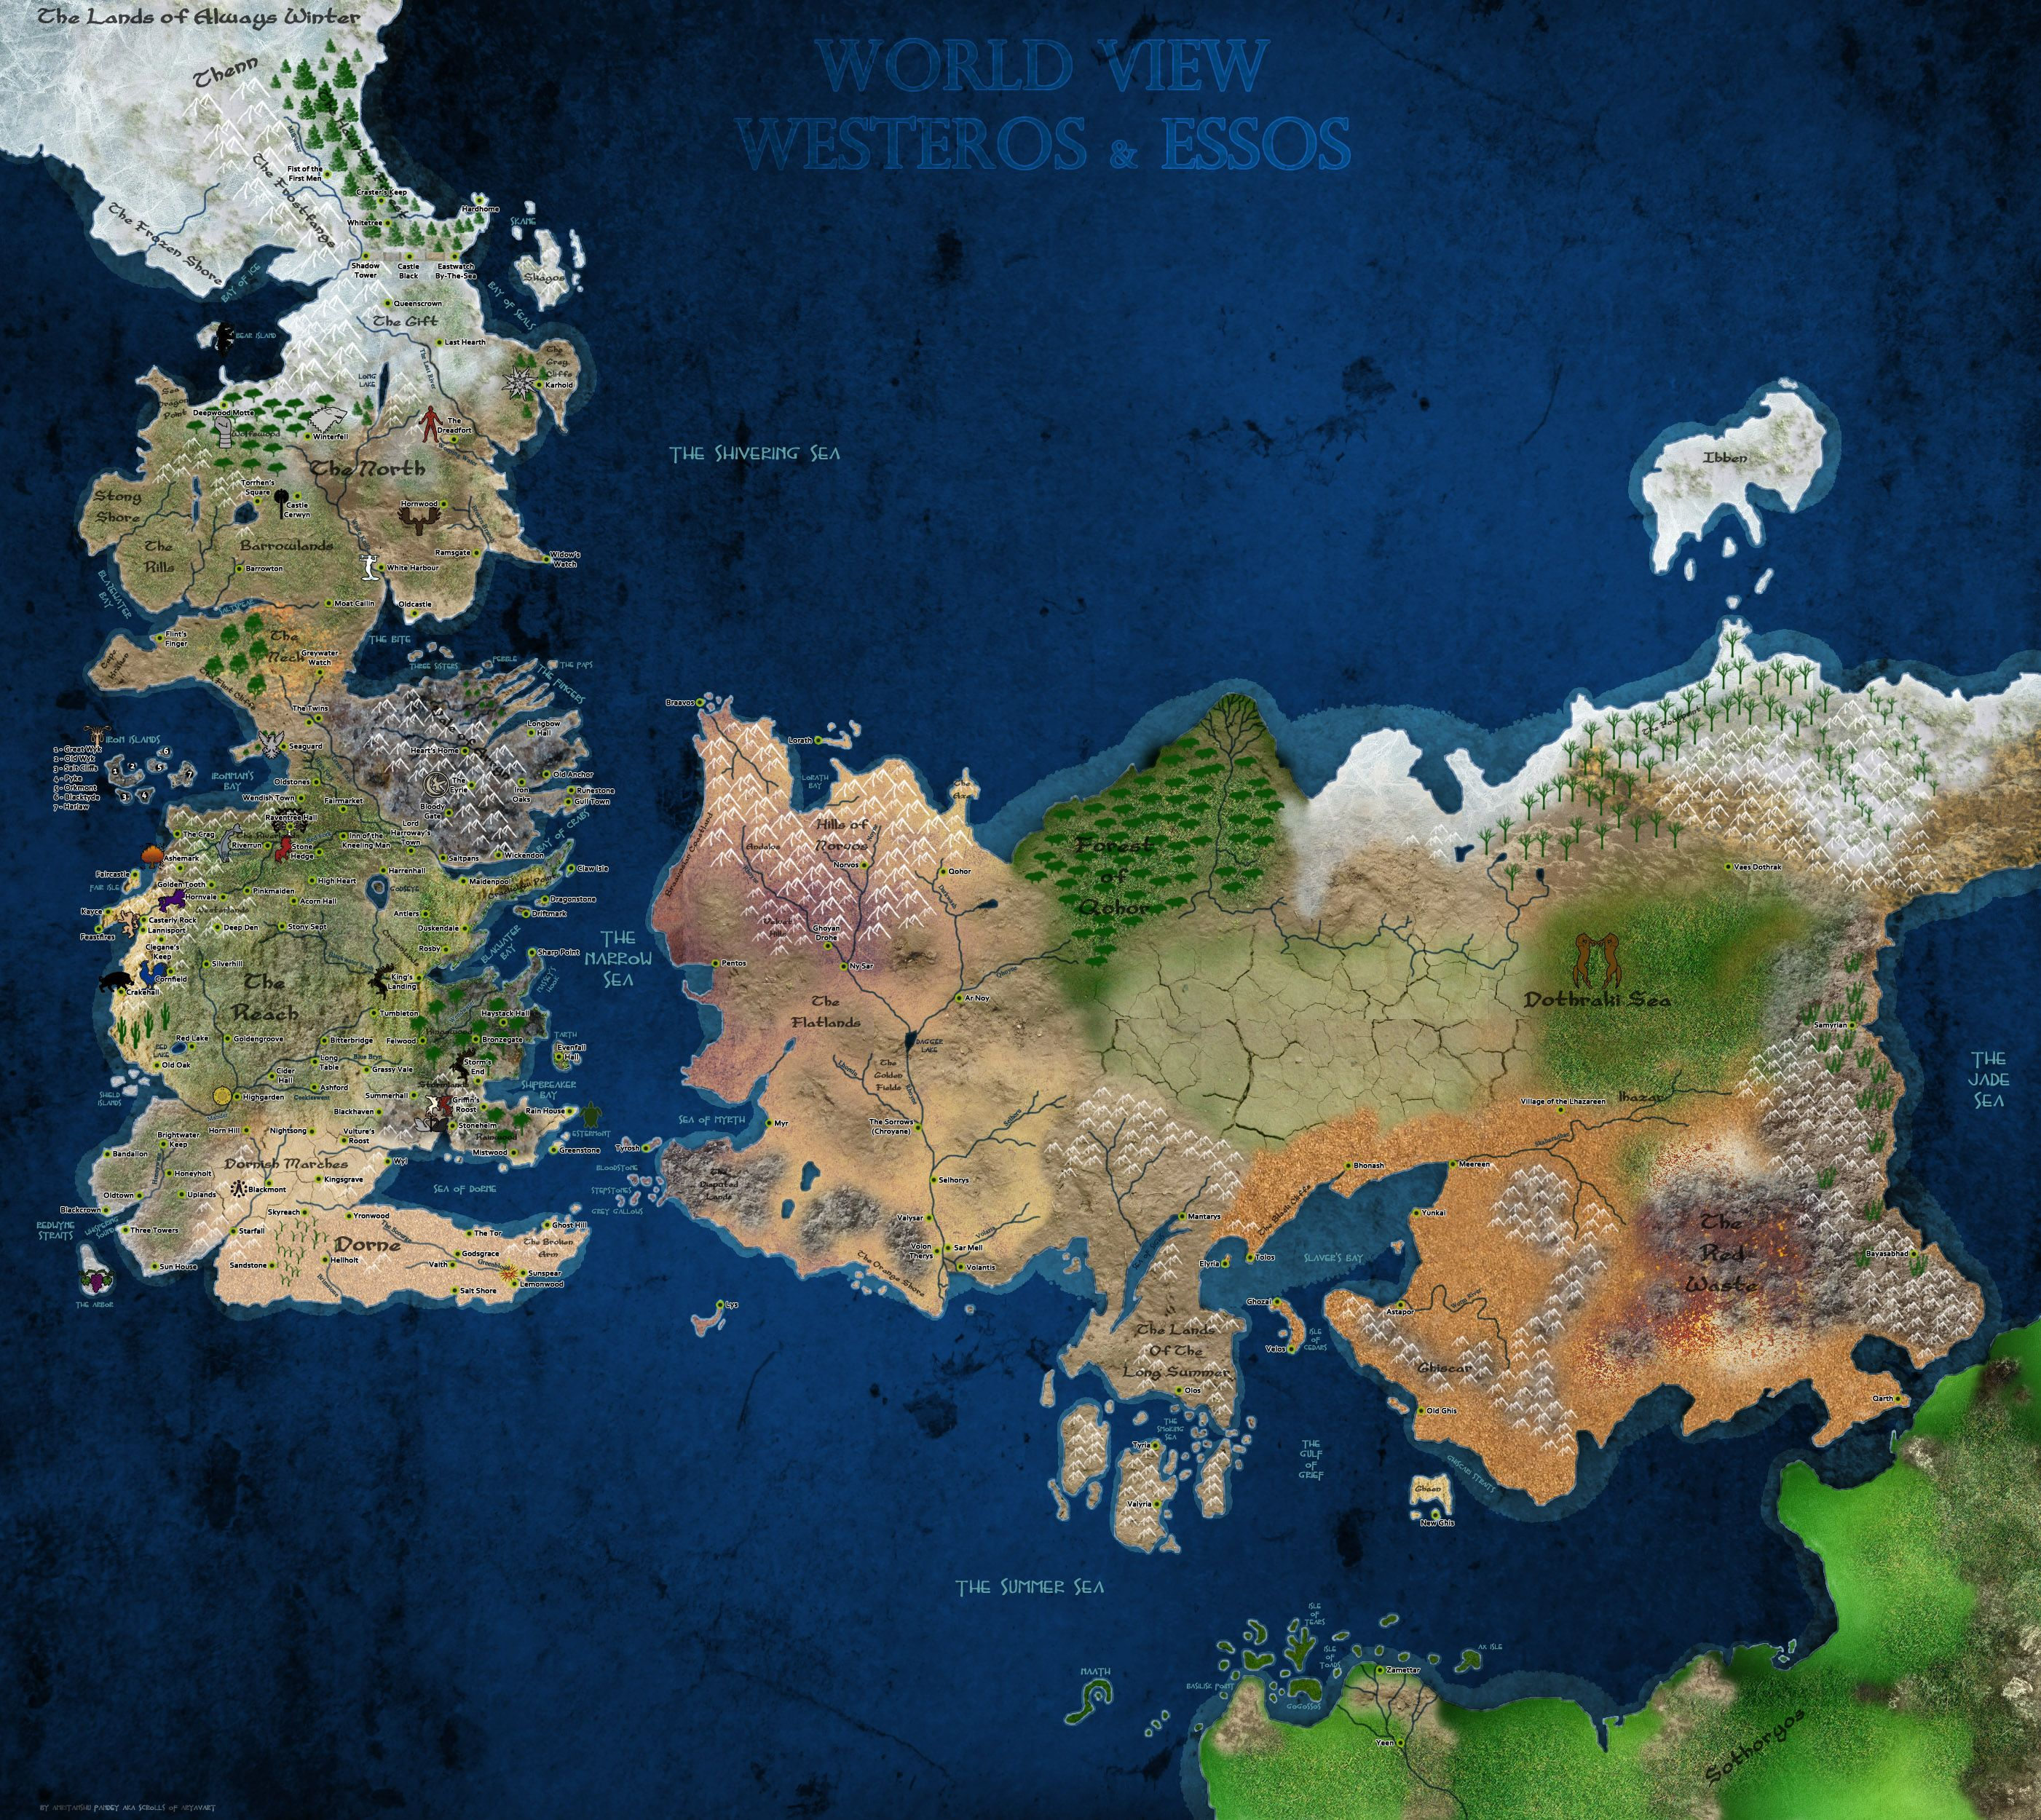 Westeros & Essos, A Game of Thrones | game of thrones ...